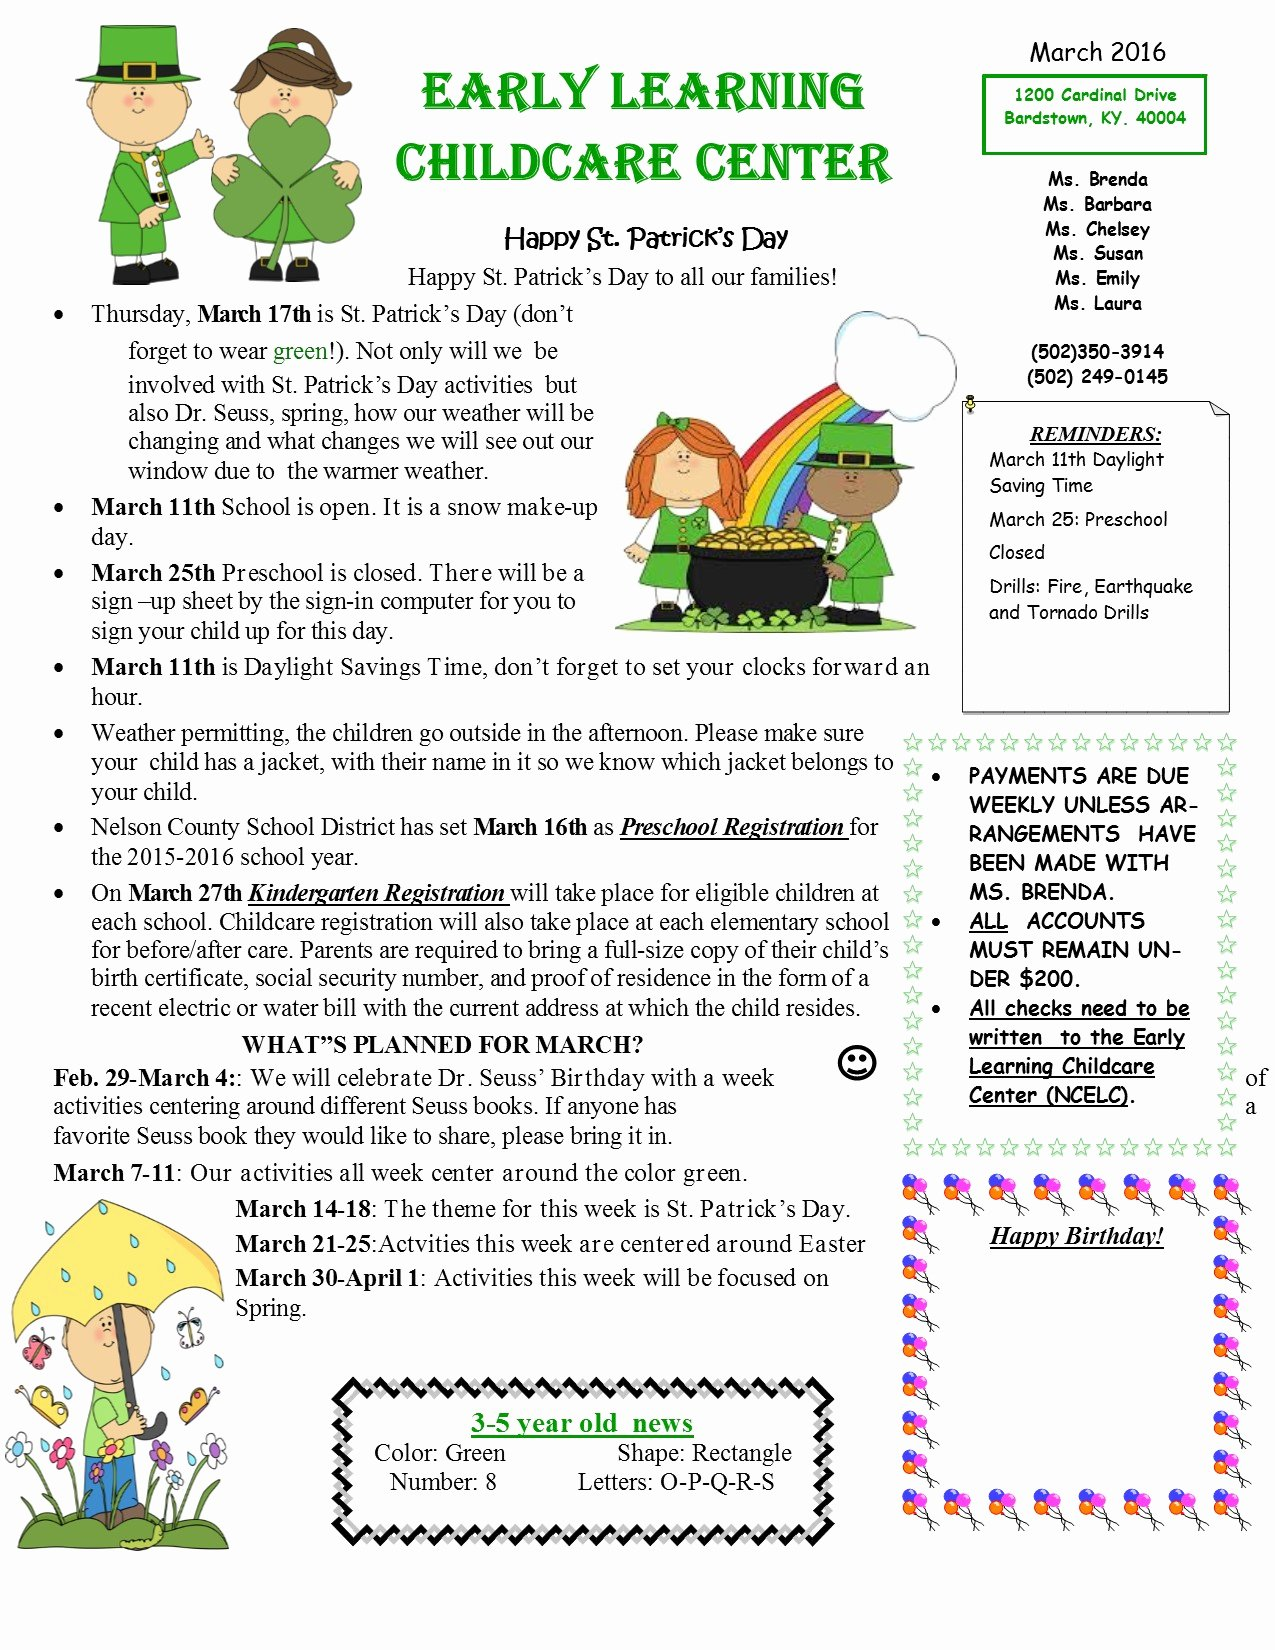 Child Care Newsletter Template Lovely March Early Learning Childcare Center Newsletter 2016